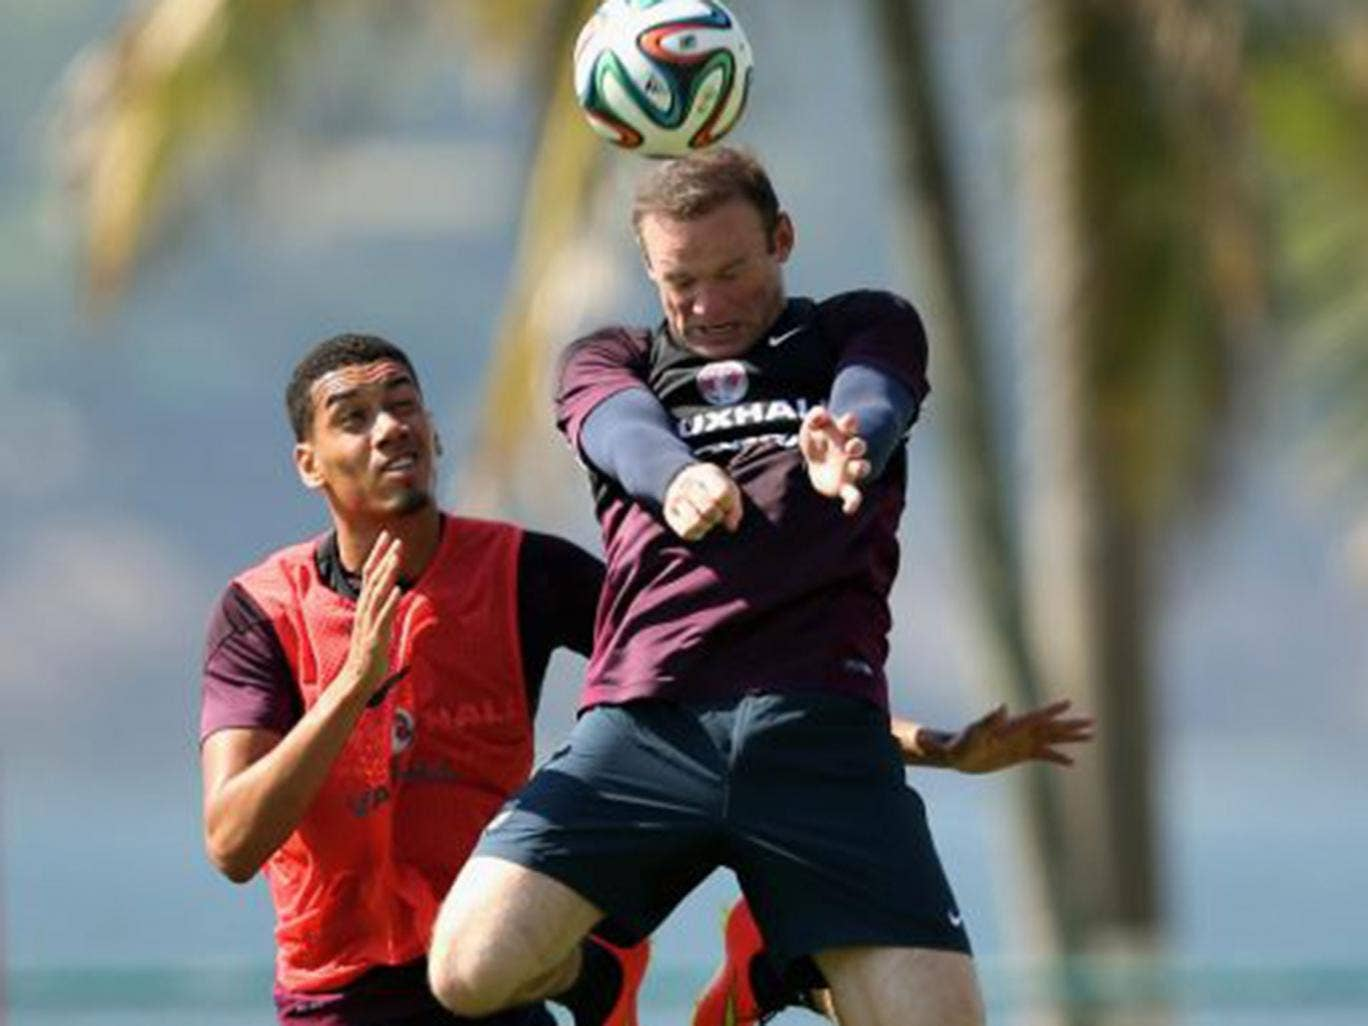 Wayne Rooney outjumps Chris Smalling during England training in Rio